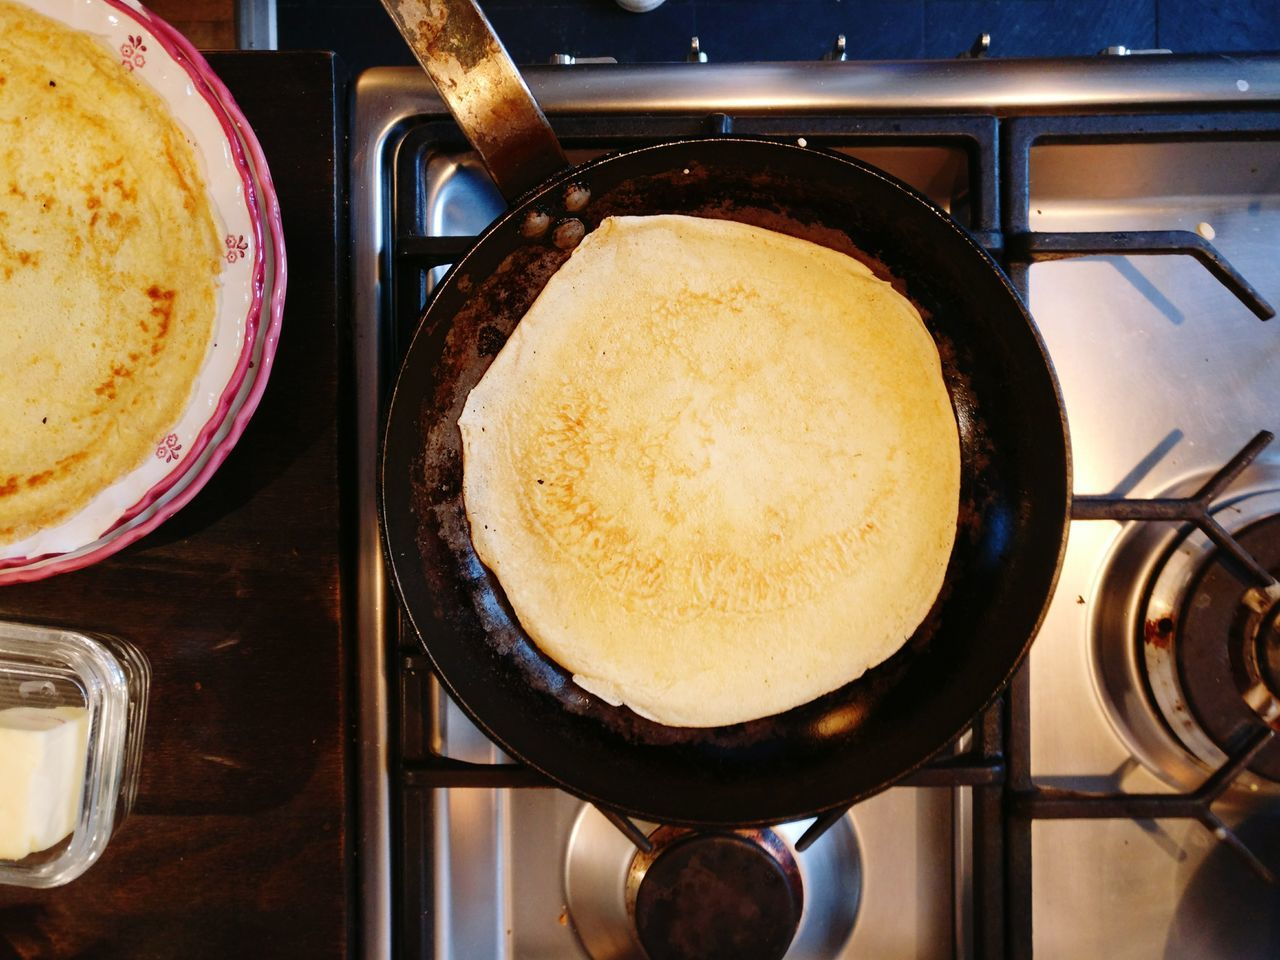 Pancakes! Preparation  Food And Drink Indoors  Food Oven Freshness Sweet Food Close-up Baking Pan Ready-to-eat